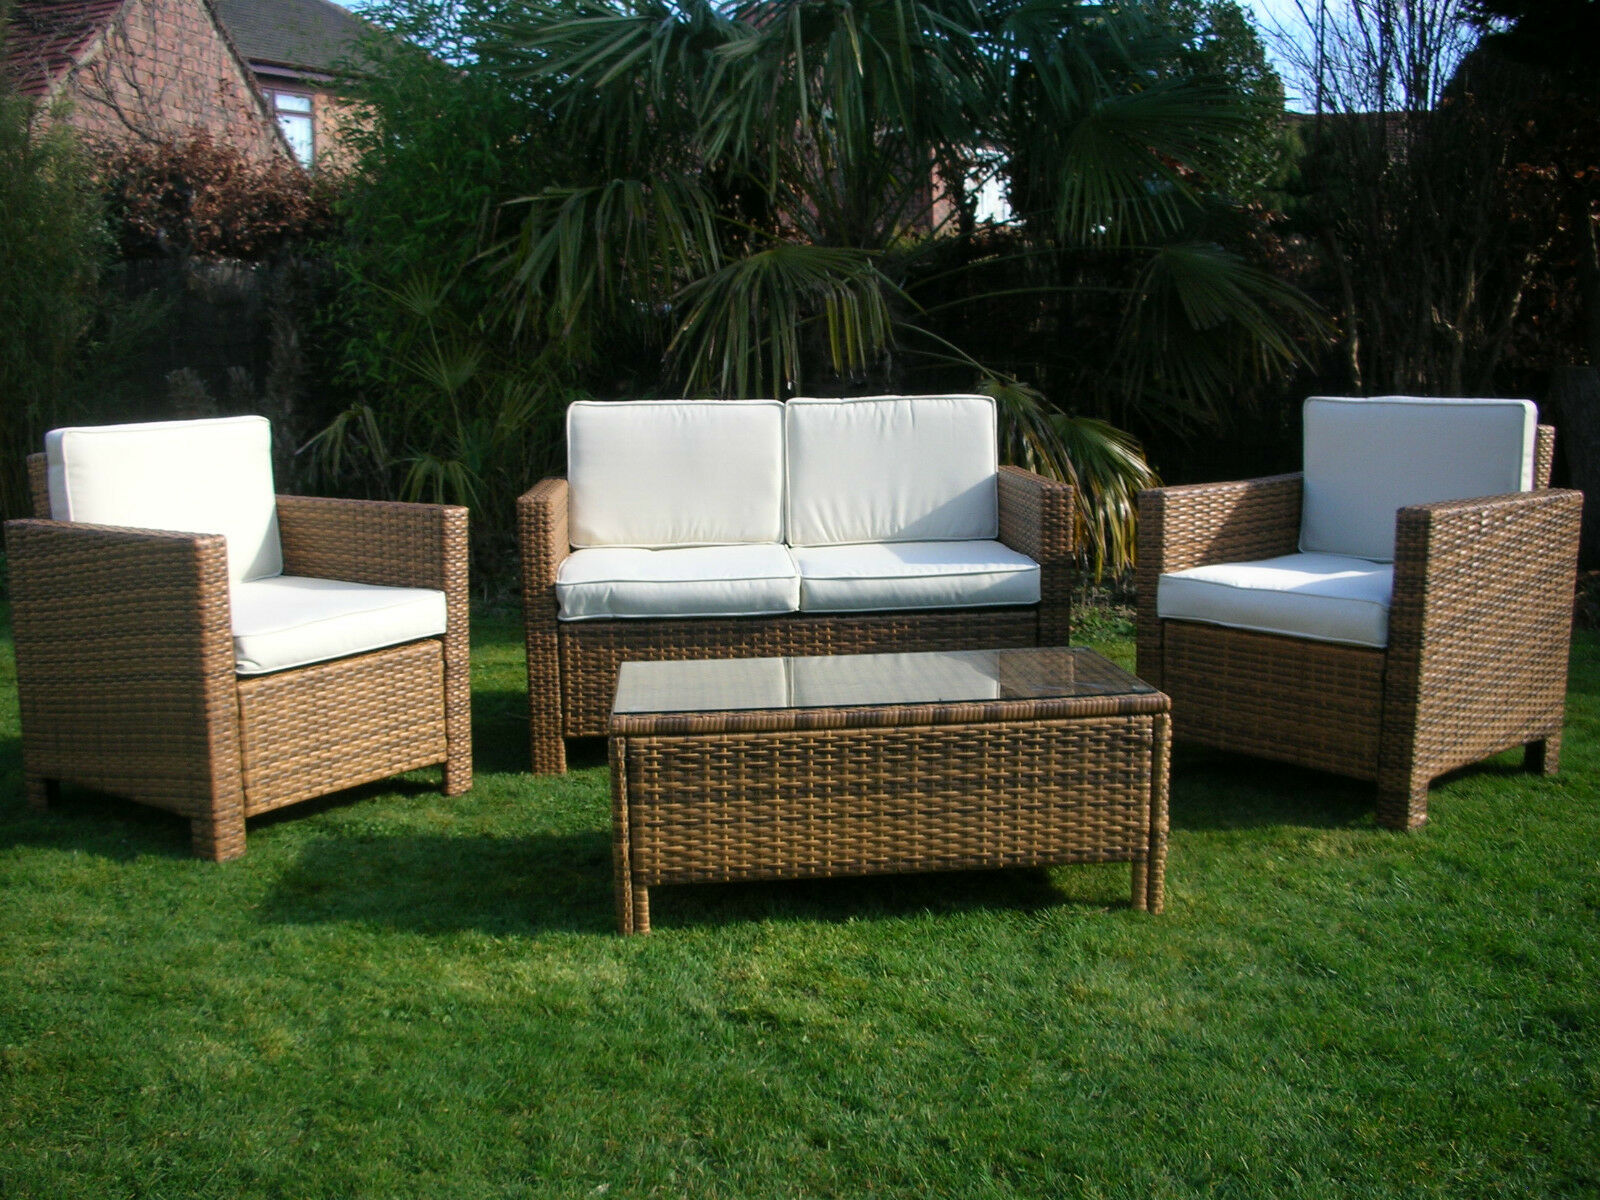 New garden rattan wicker outdoor conservatory furniture for Bamboo outdoor furniture